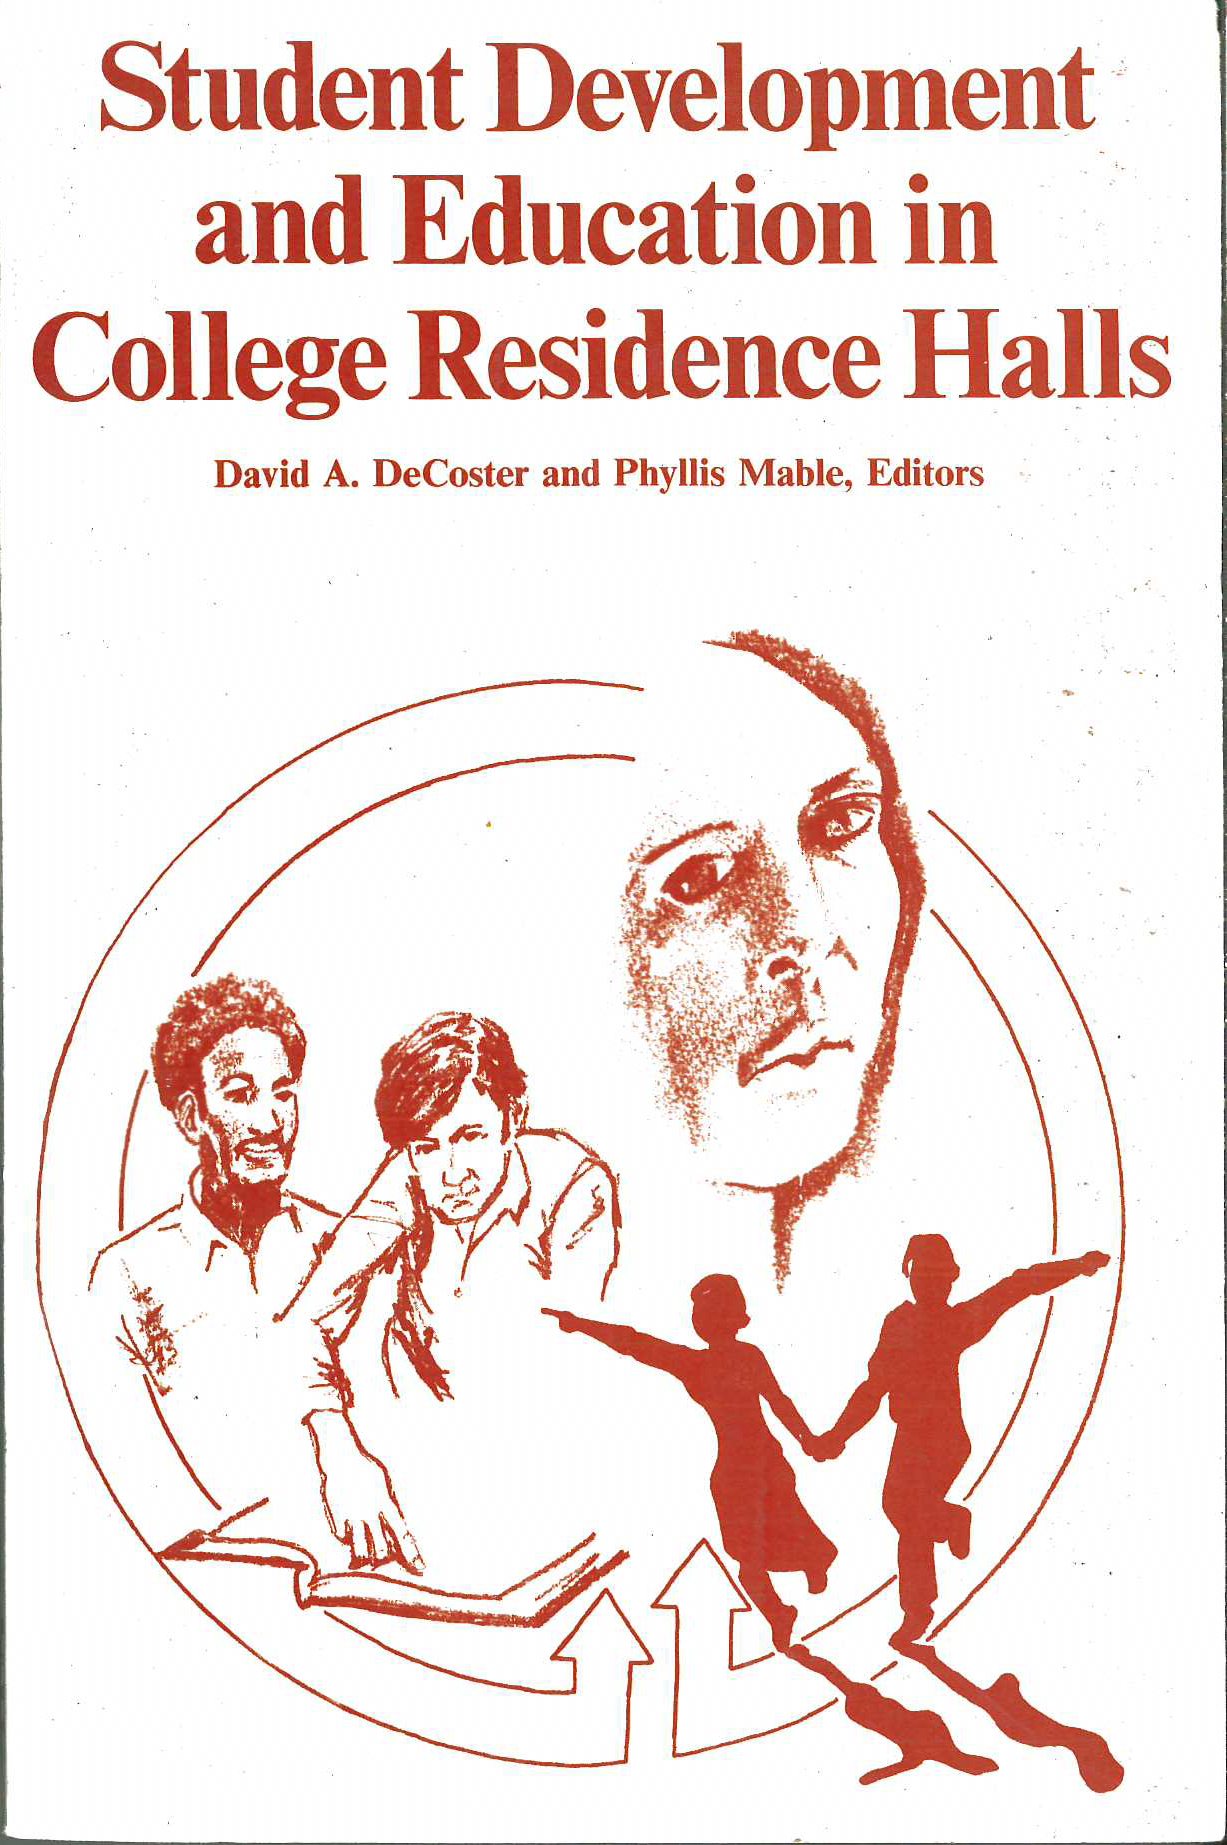 Student Development and Education in College Residence Halls